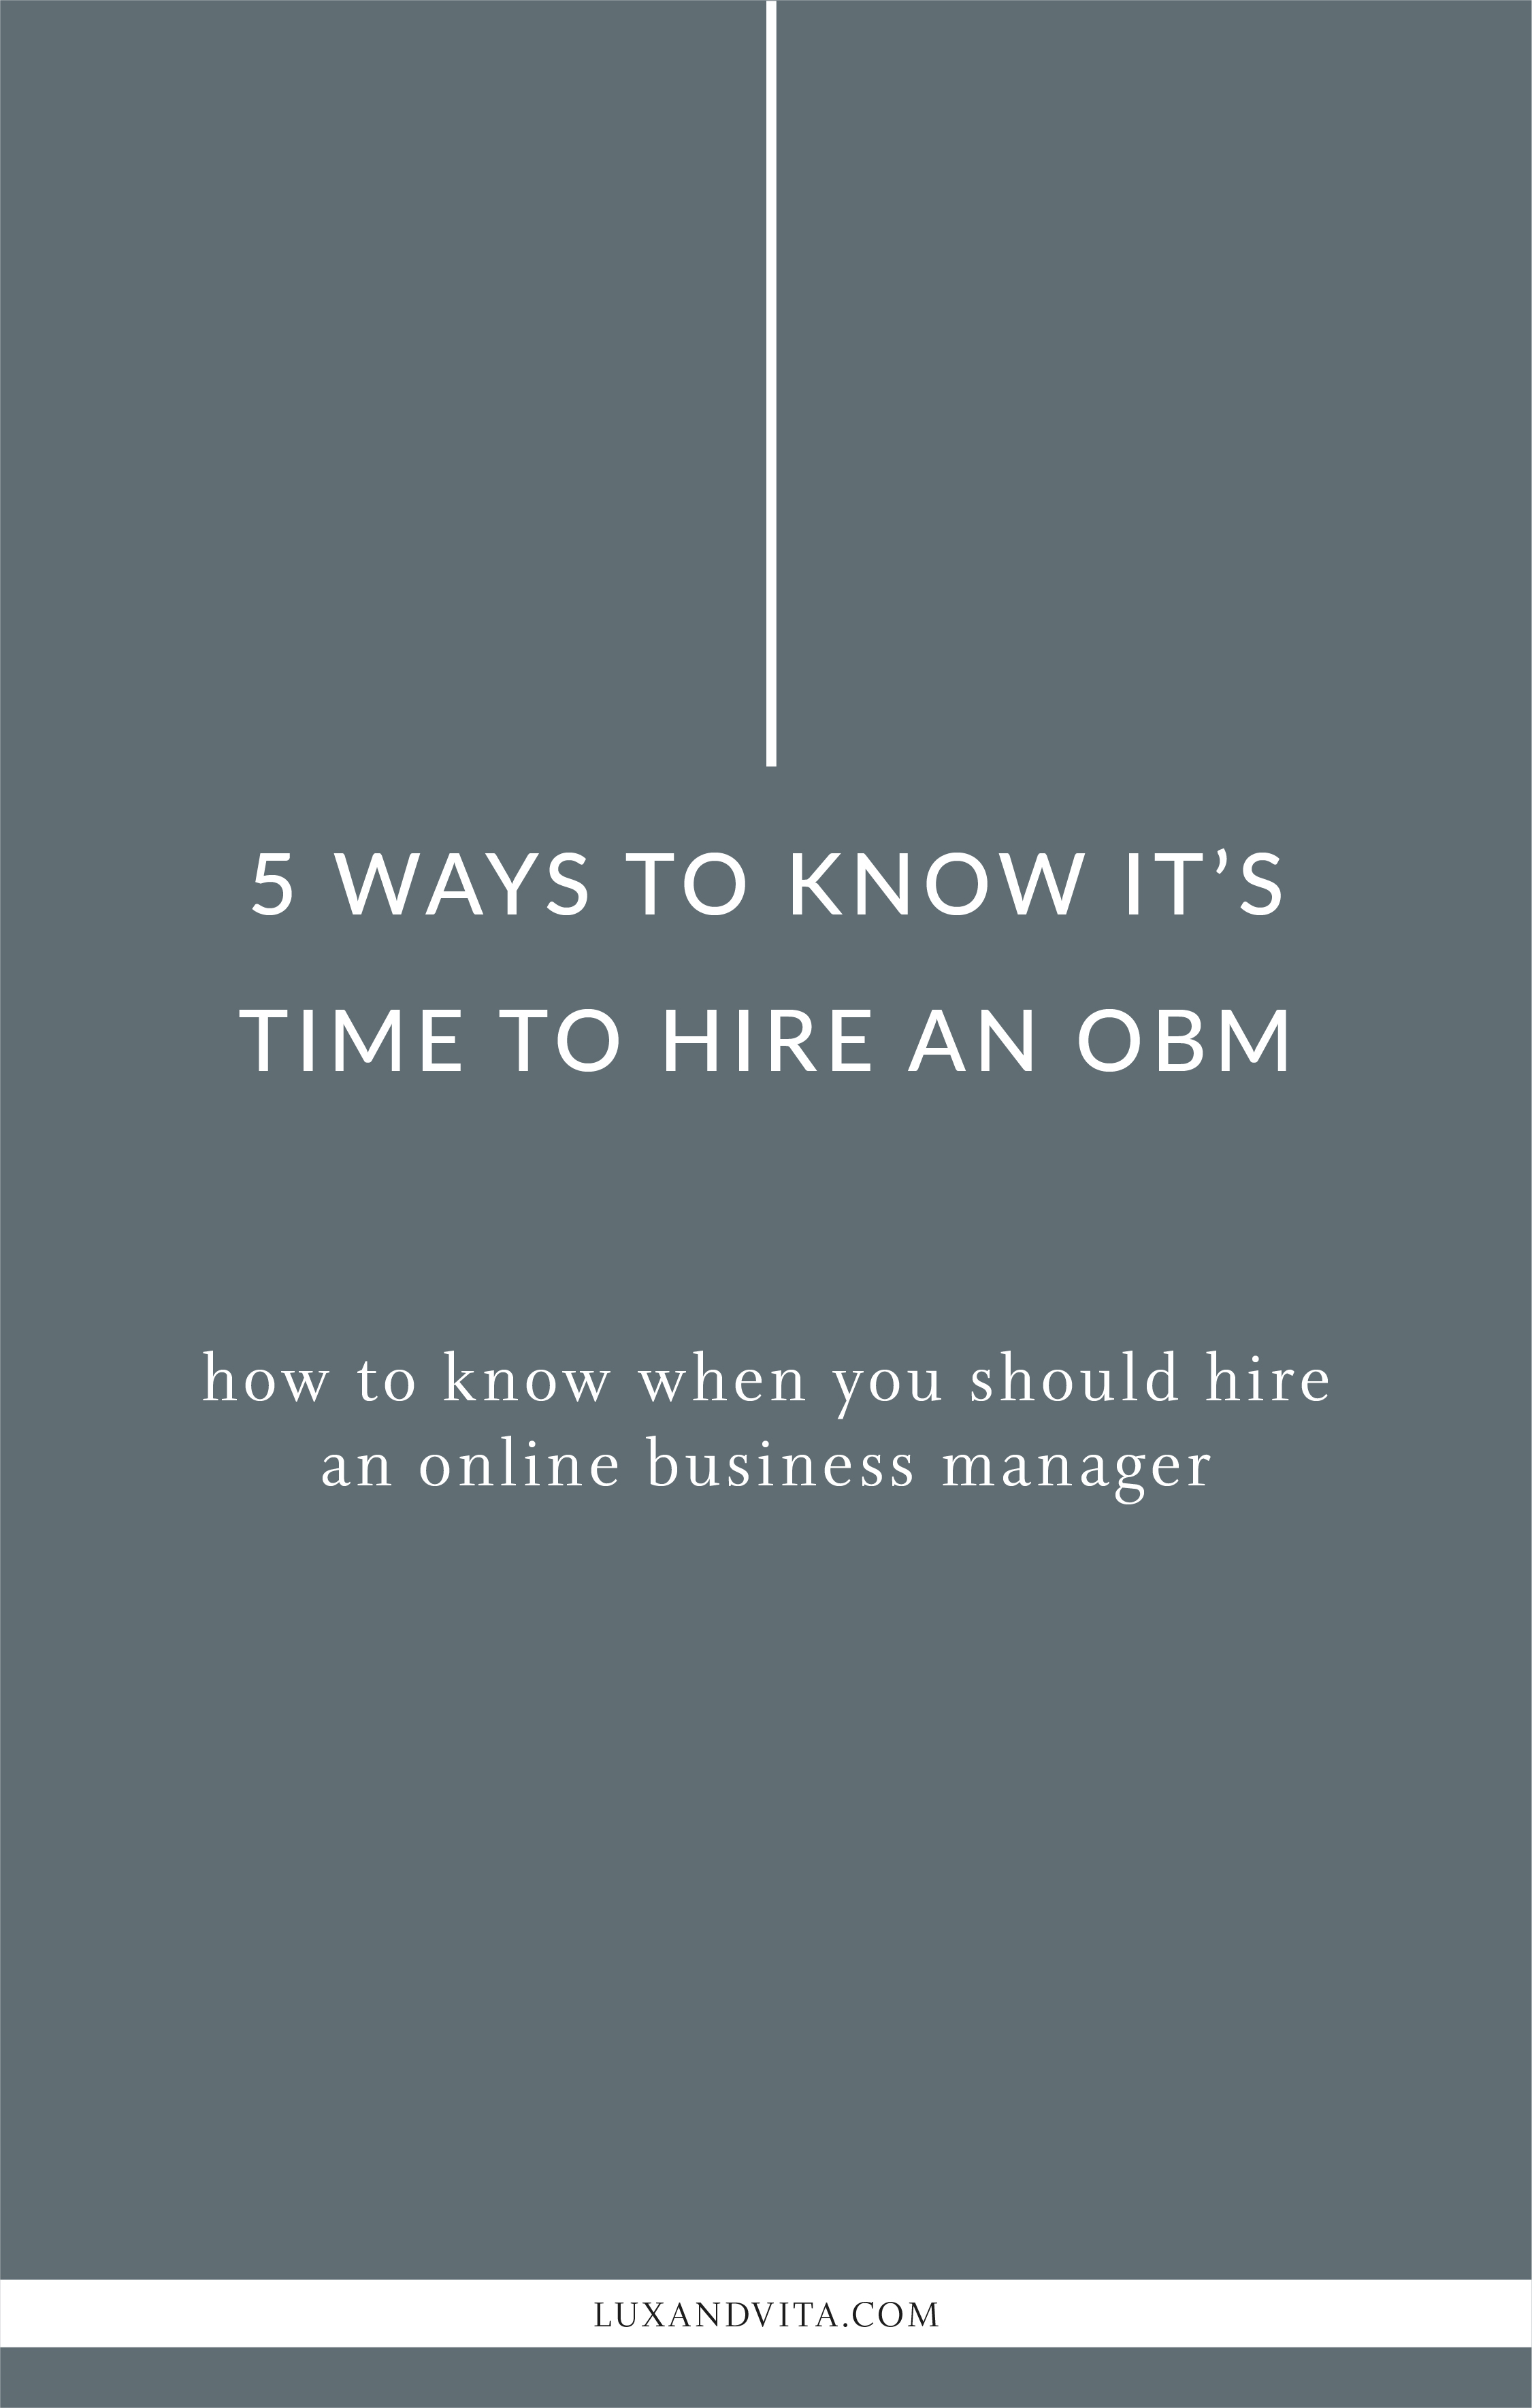 5 clues it's time to hire an OBM for your creative business_Pinterest 2.jpg